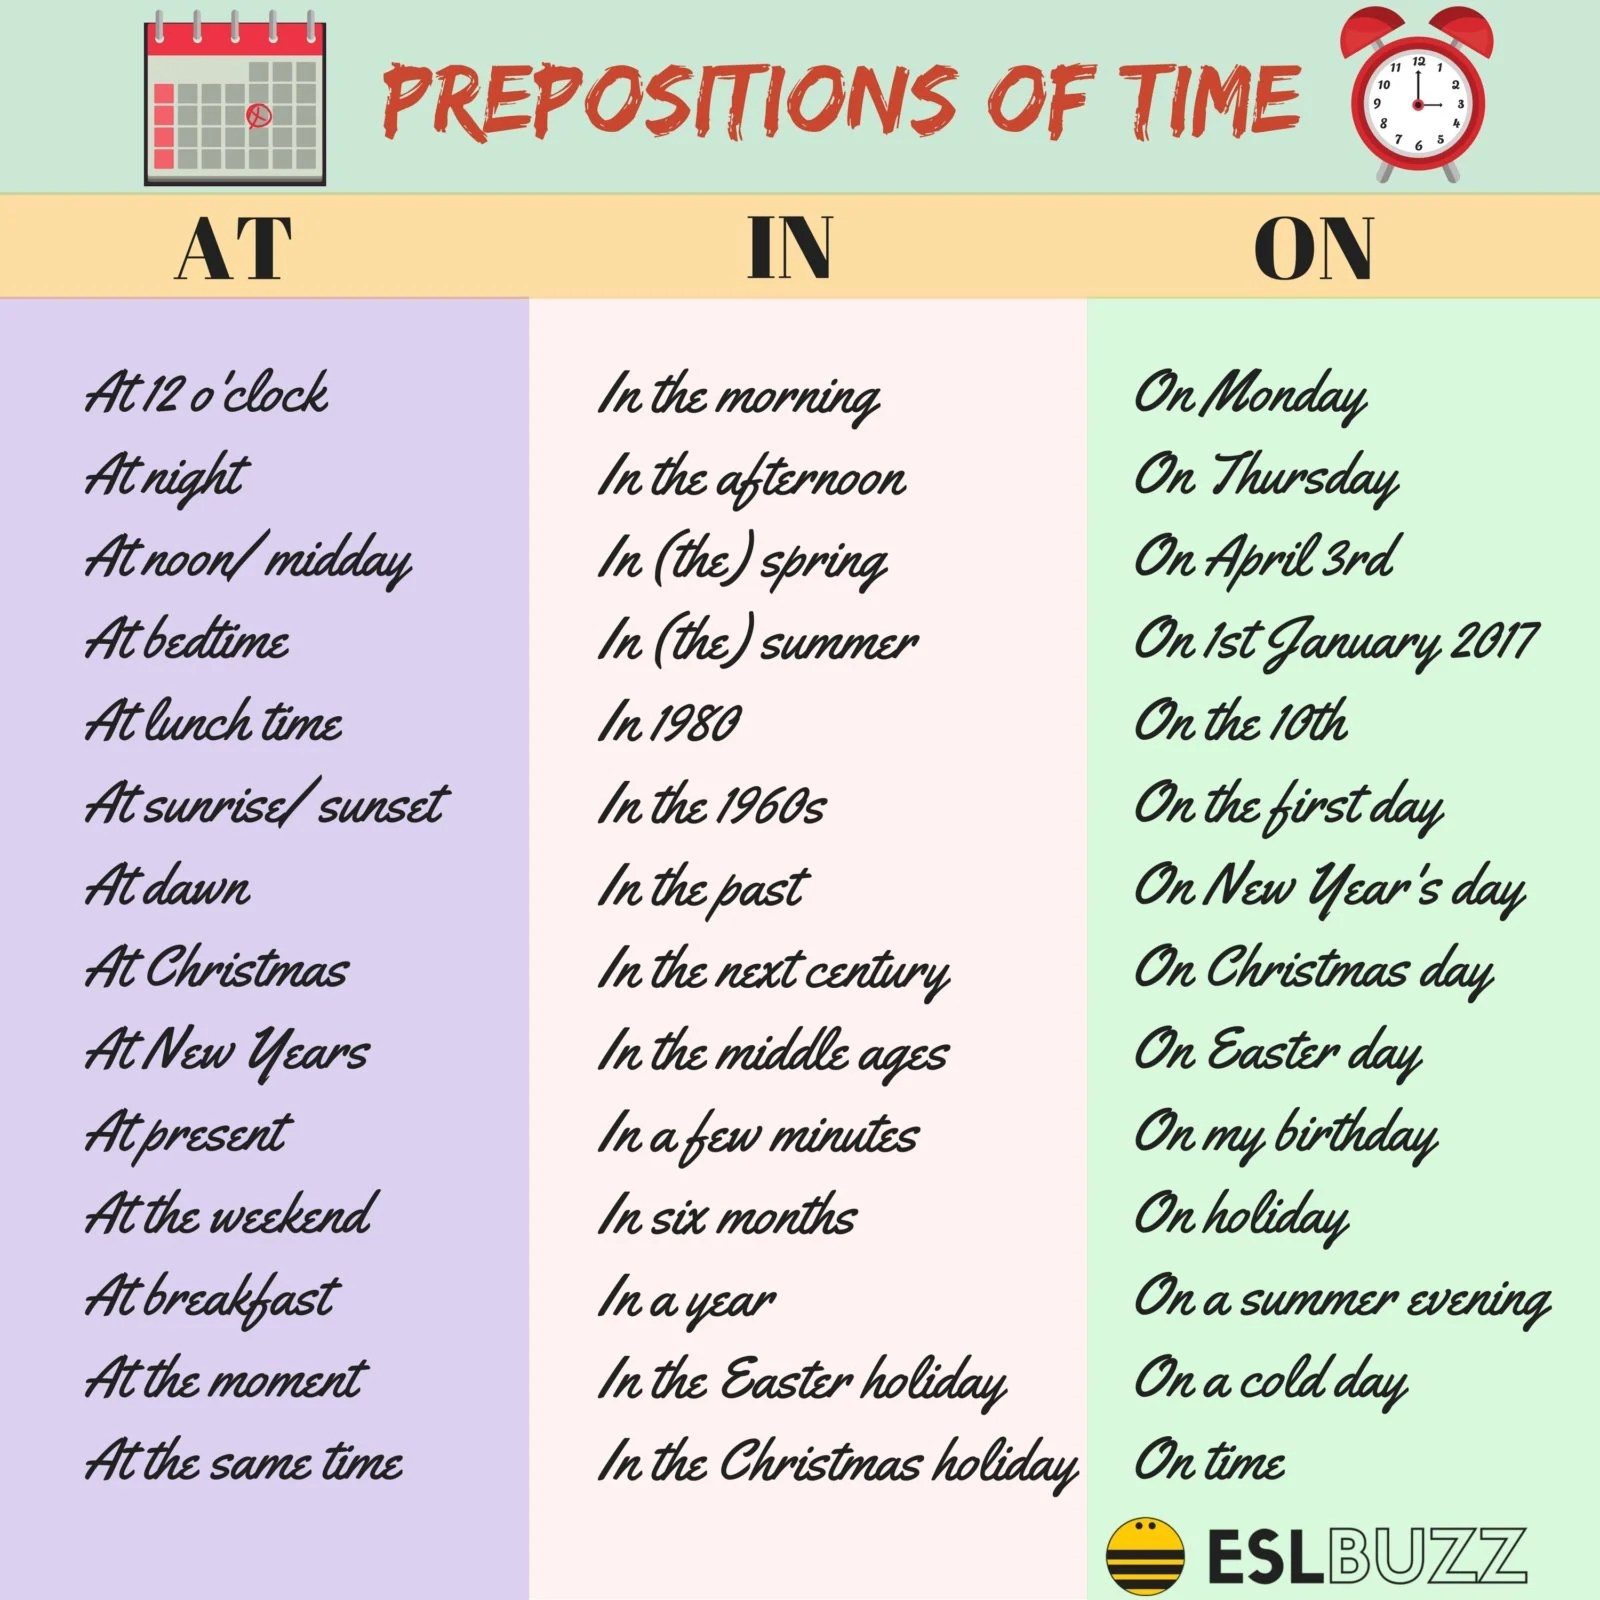 How To Use Prepositions Of Time